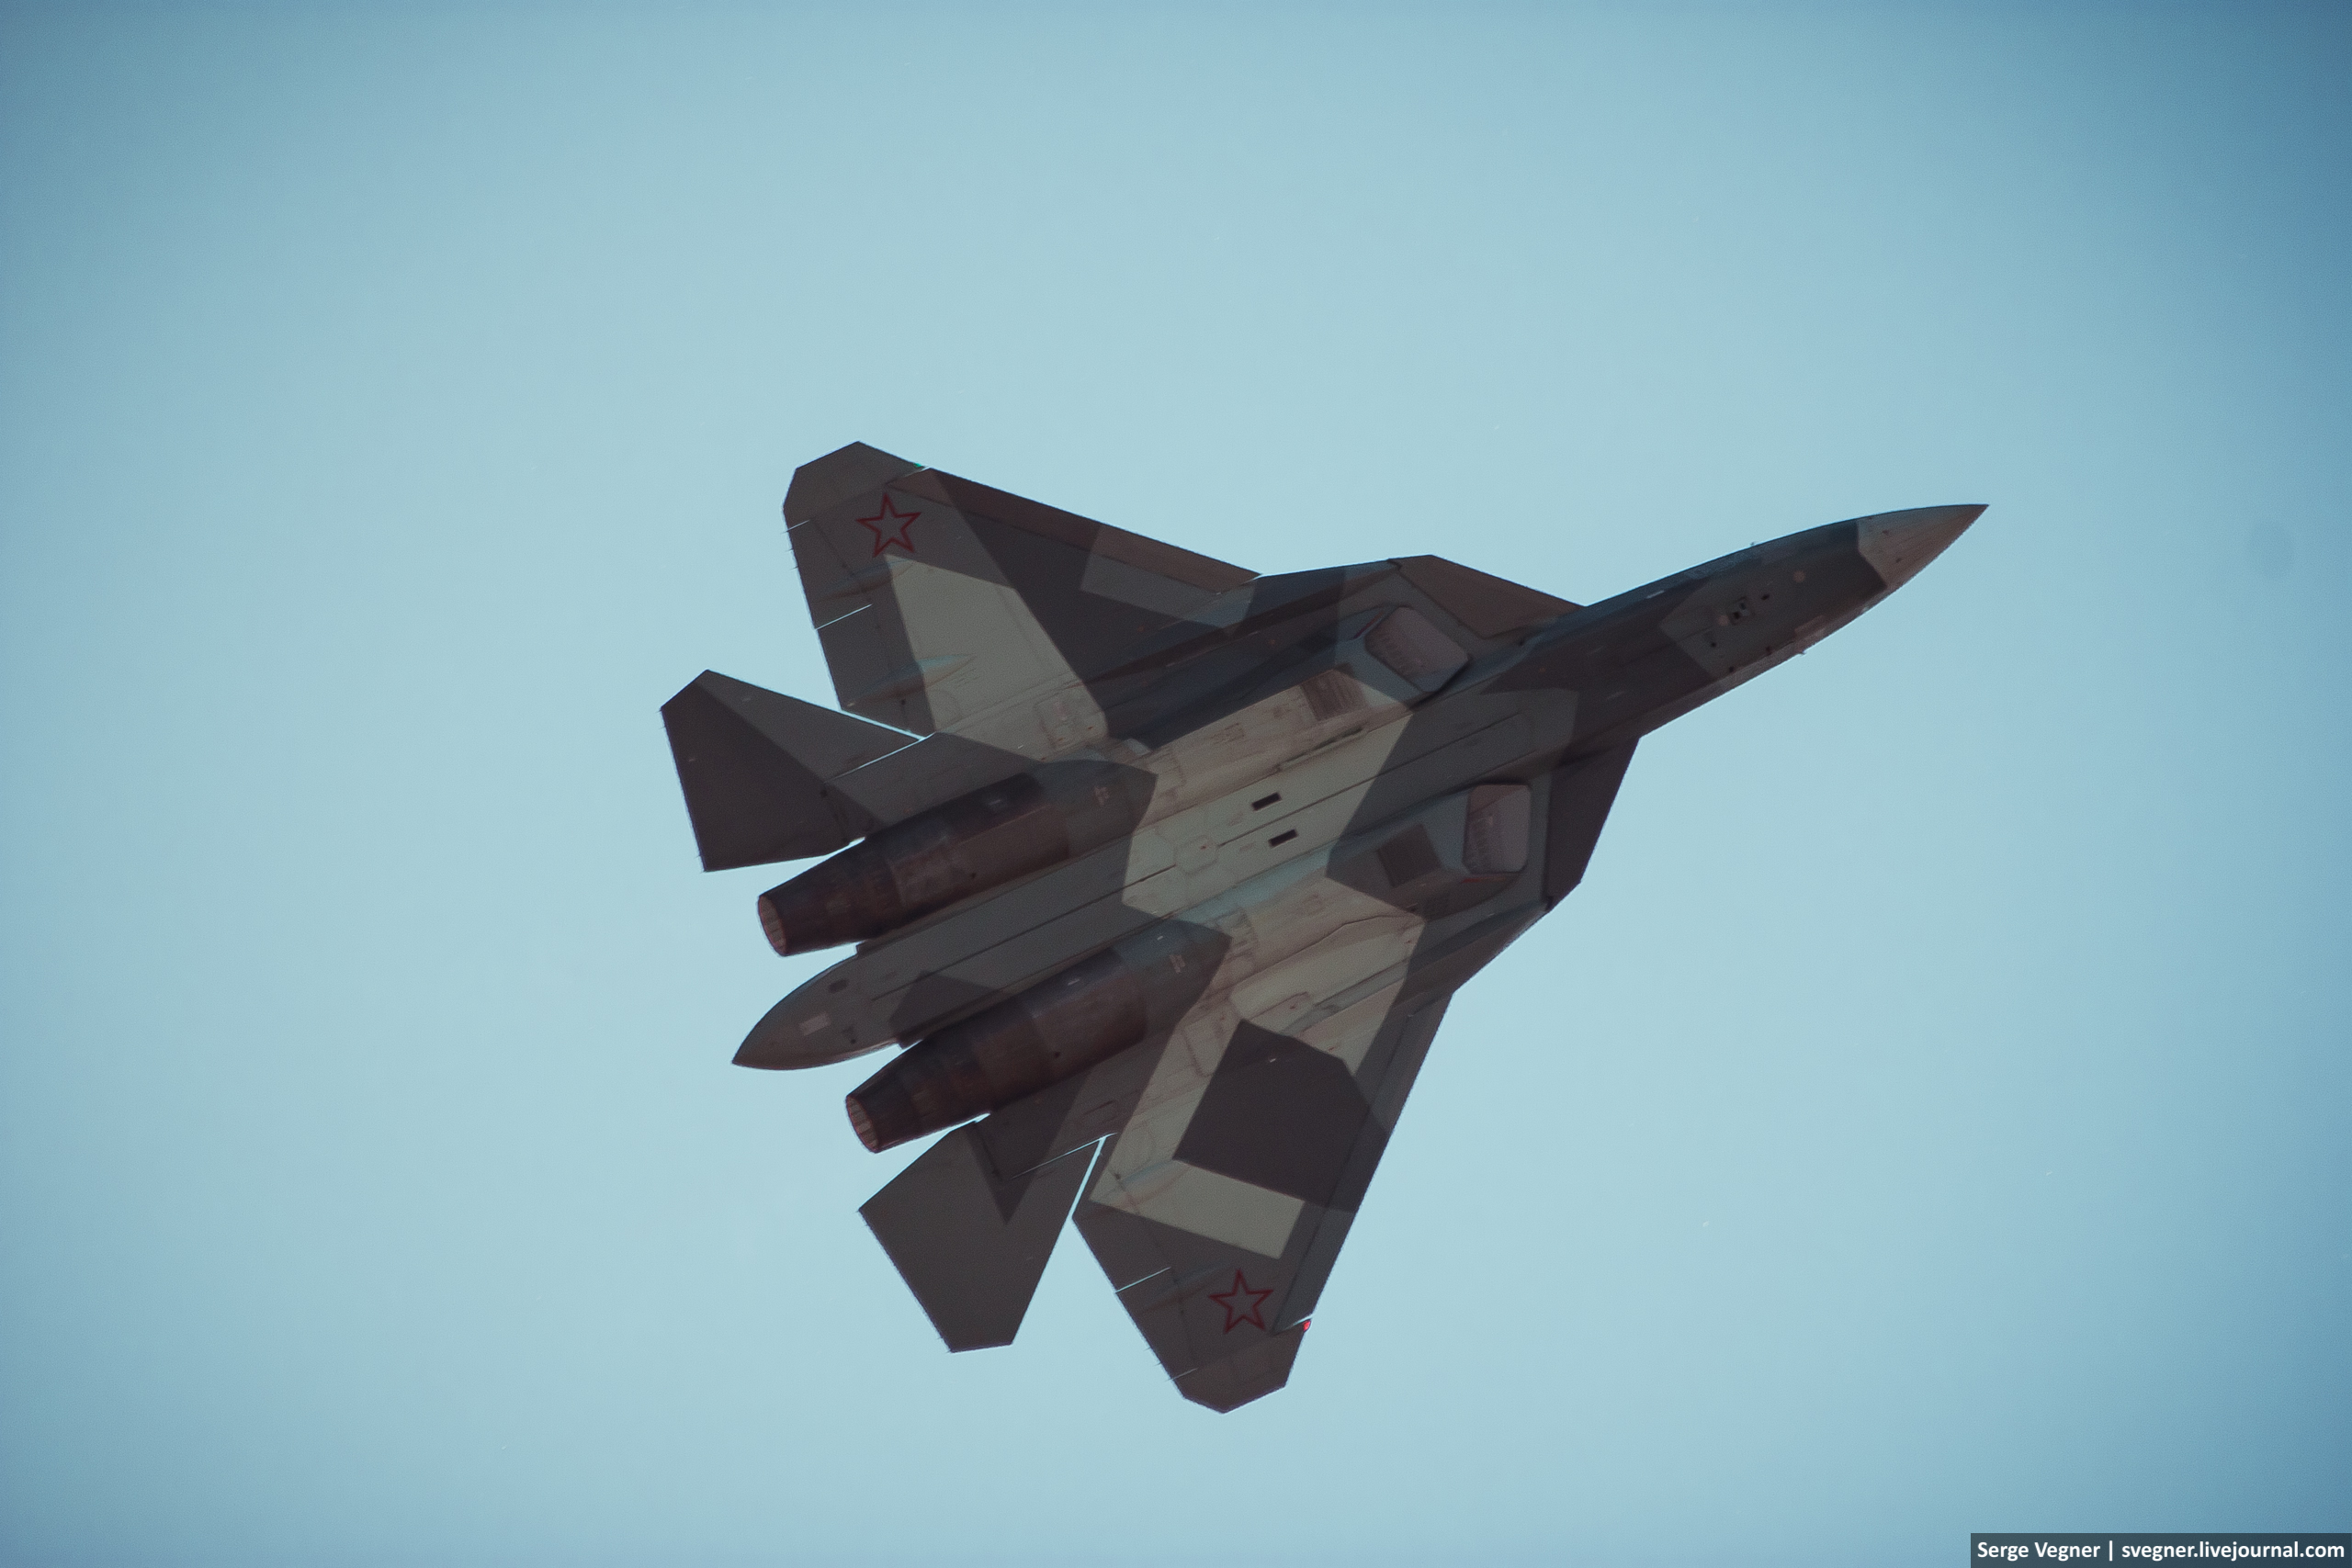 MAKS-2015 Air Show: Photos and Discussion - Page 3 0_f7cfa_b79c93c9_orig